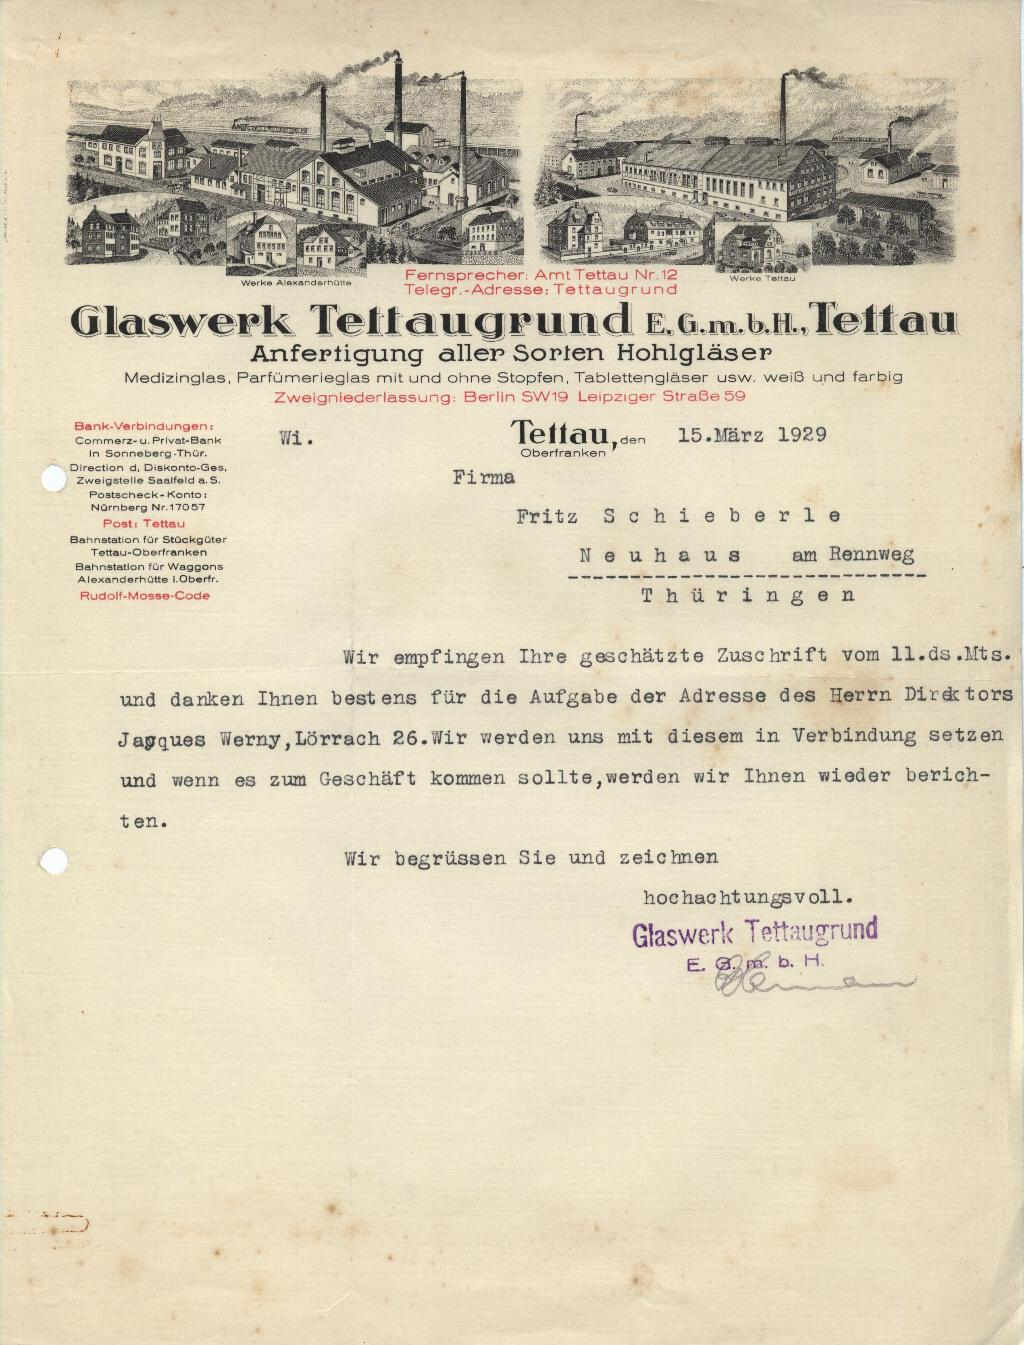 """Glaswerk Tettaugrund 1929"""